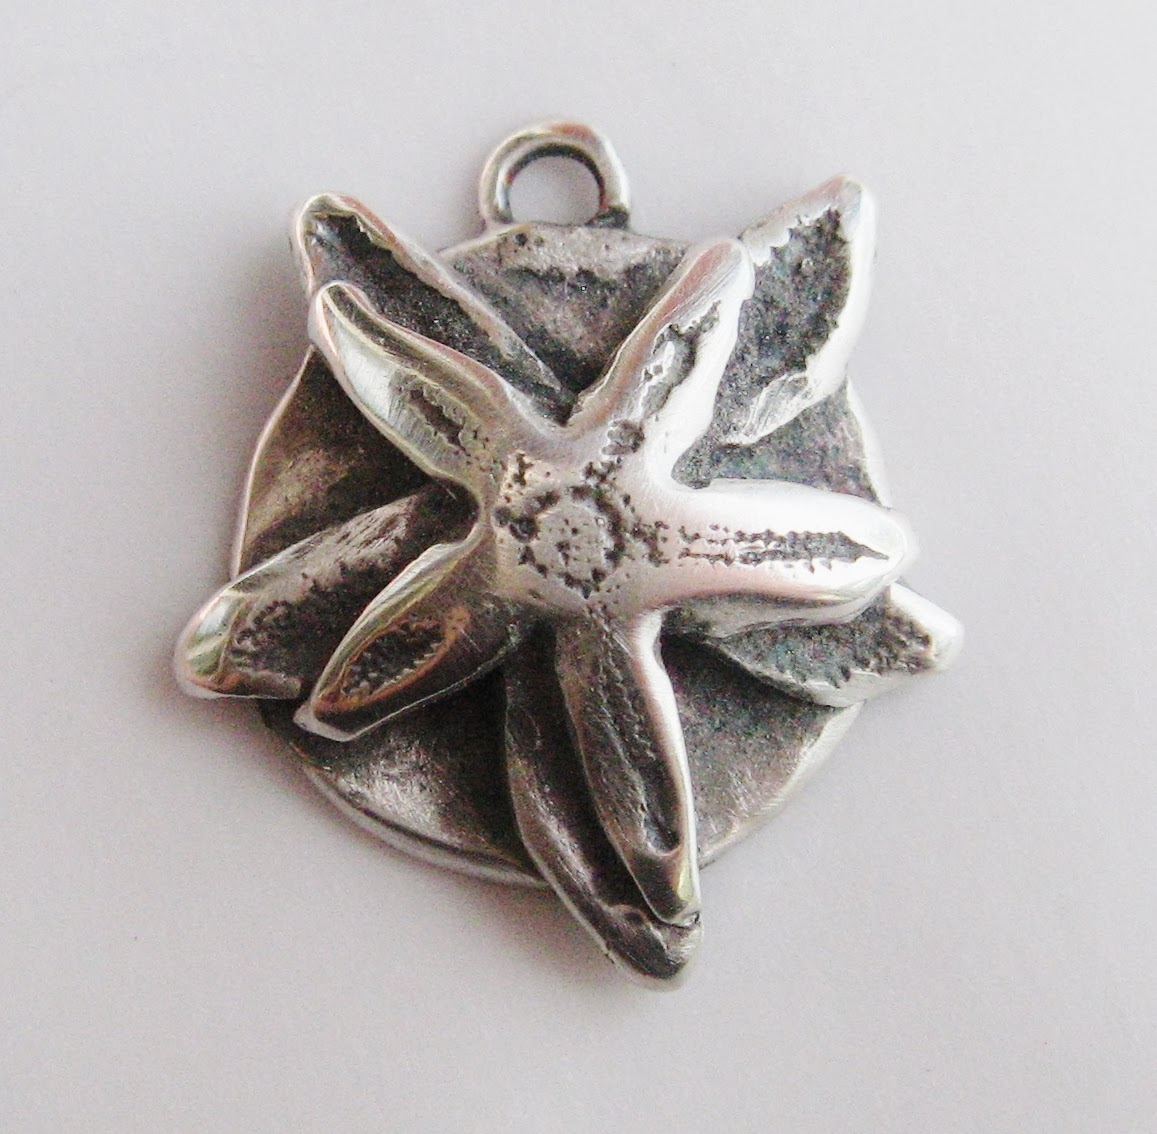 http://wingedwomanart.3dcartstores.com/Poseidons-Bride-starfish-necklace-with-paua-shell_p_33.html